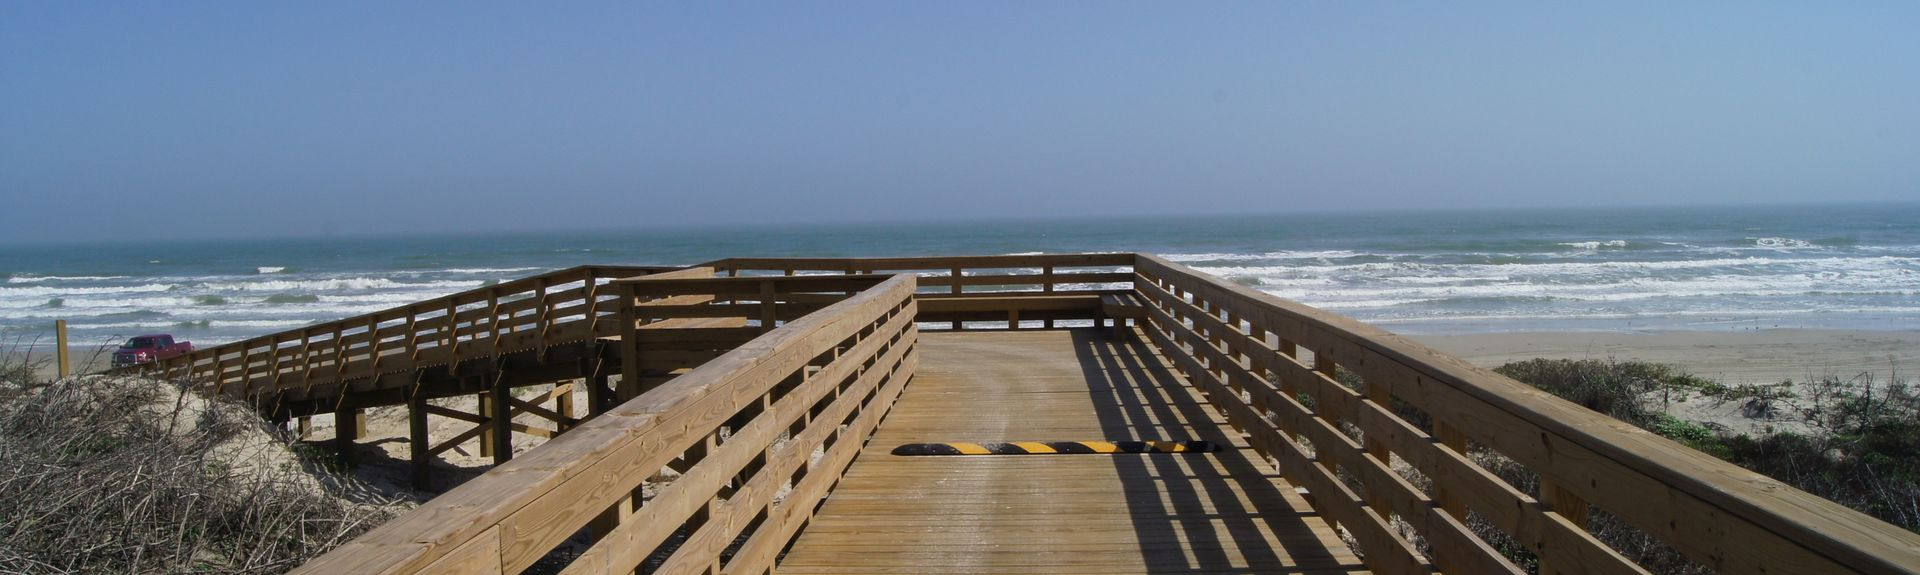 Royal Sands, Port Aransas, TX, USA